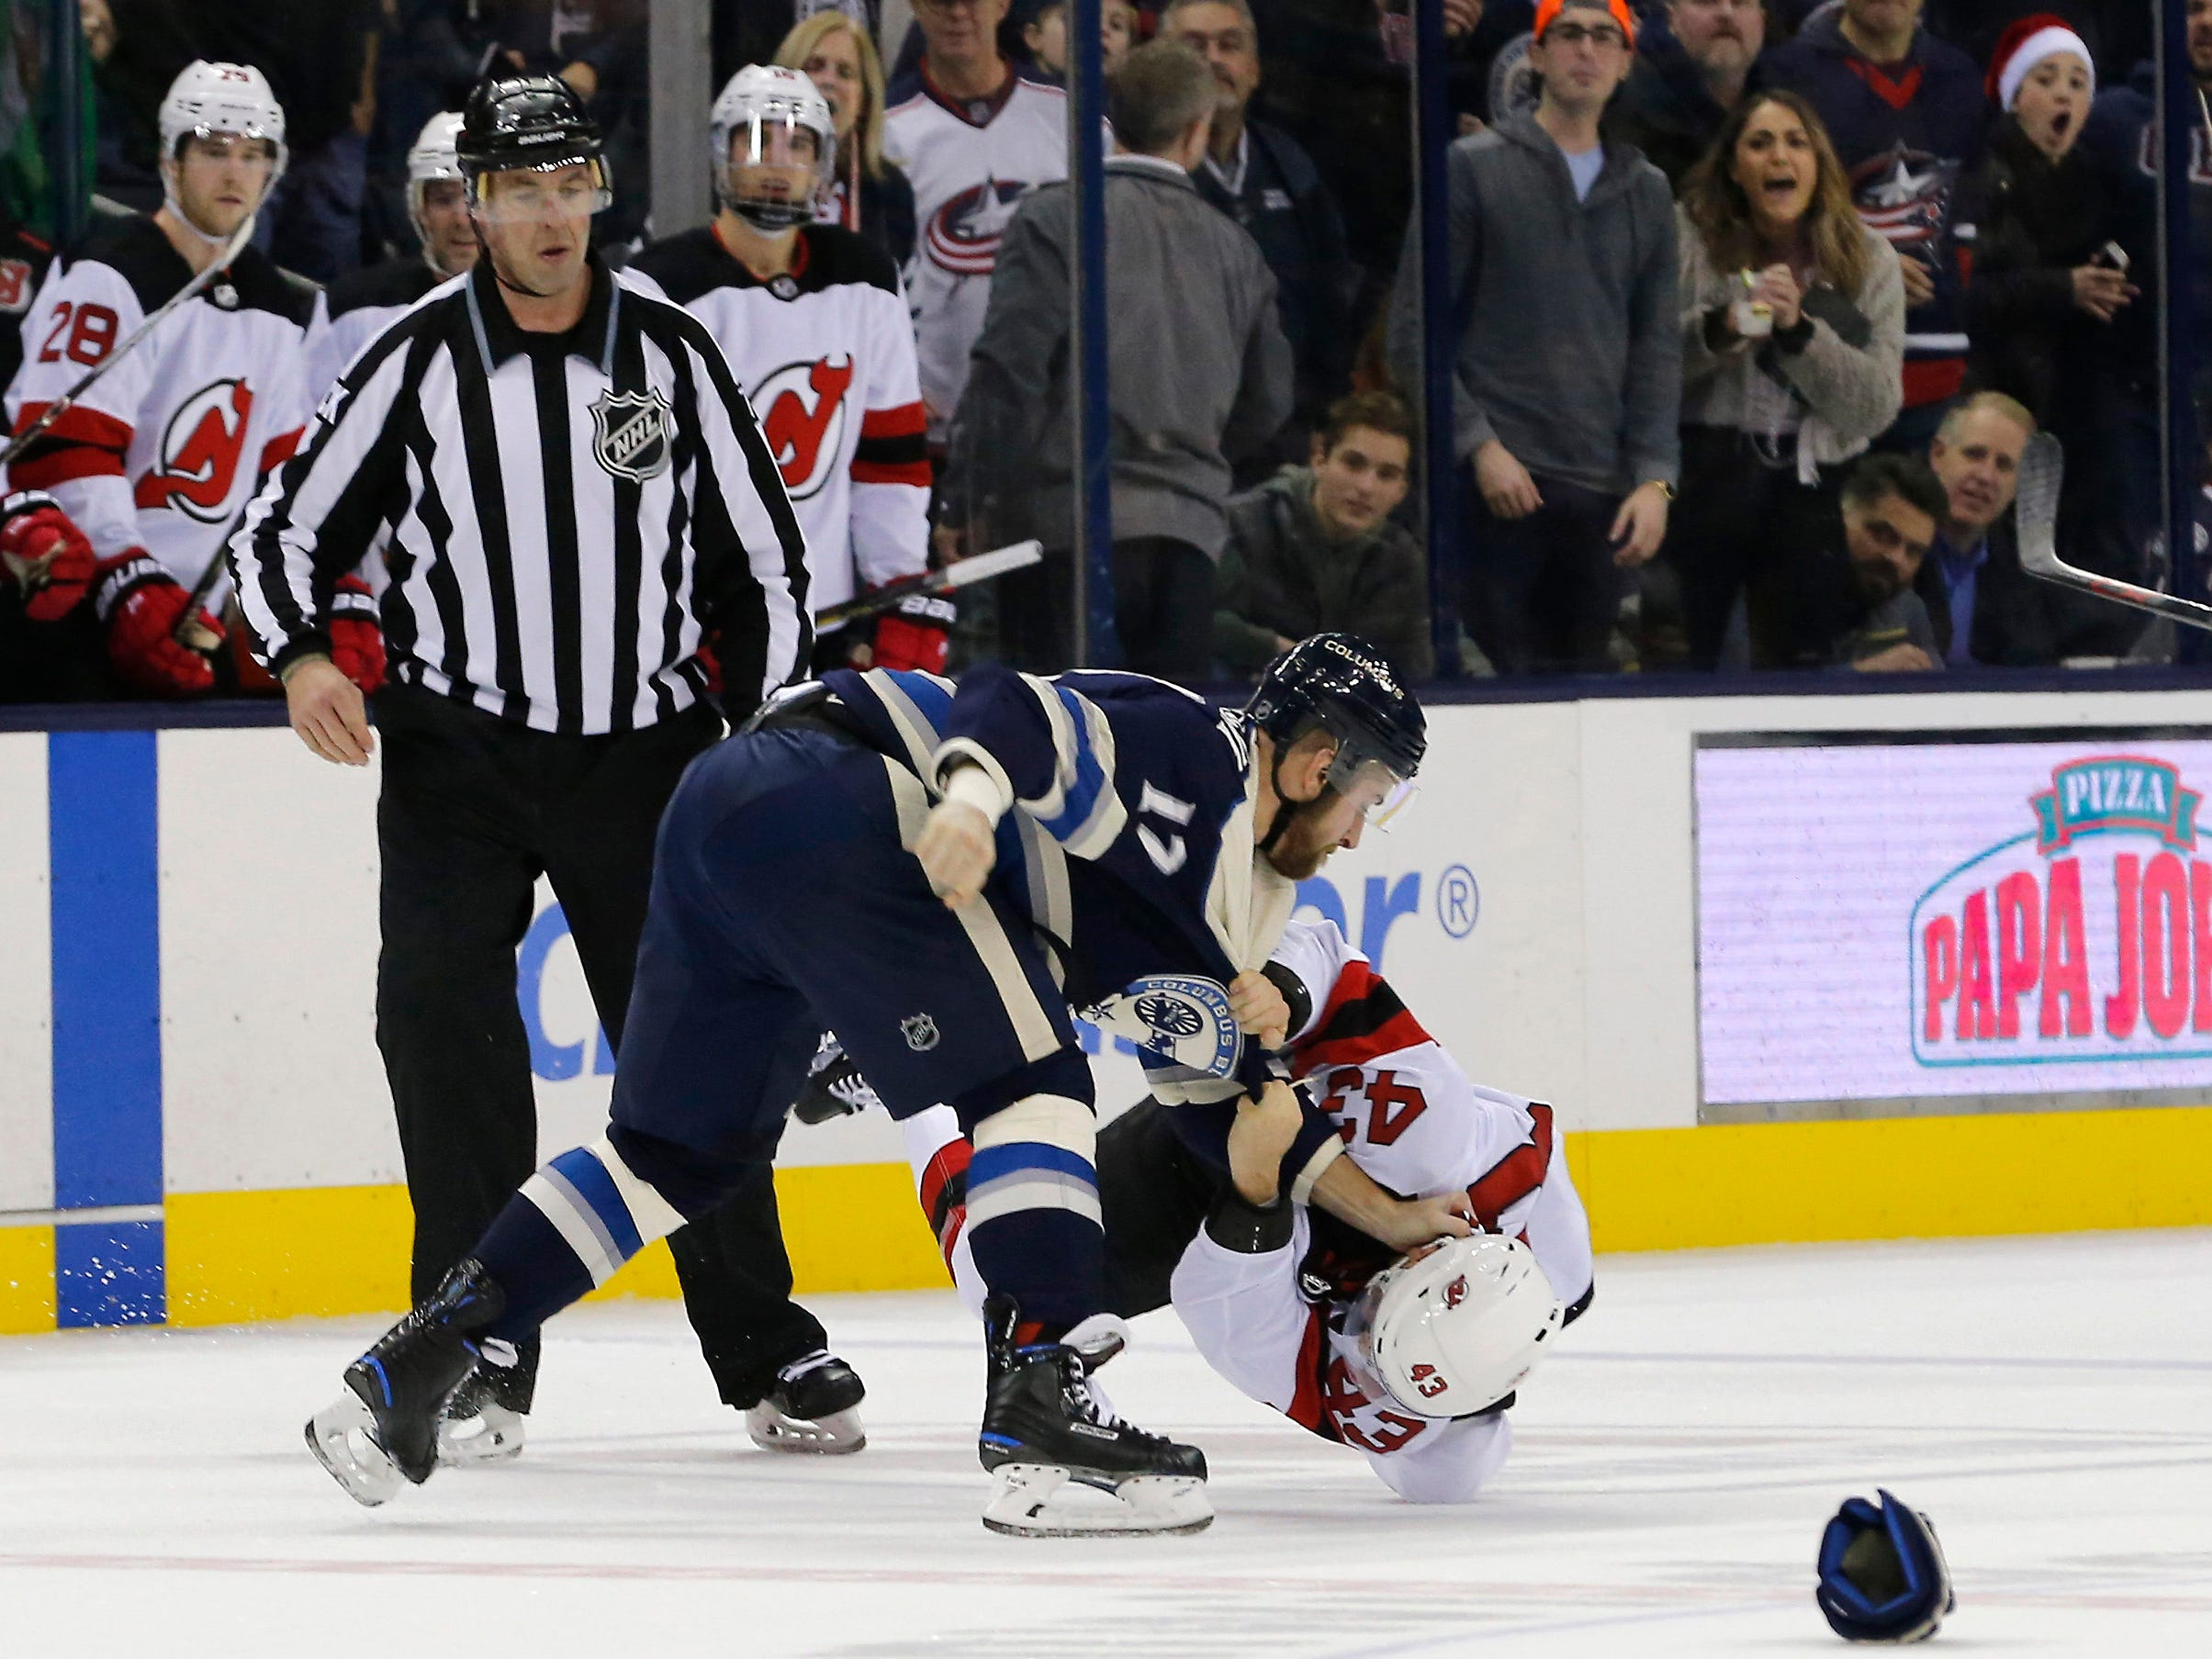 Dec. 20: Columbus Blue Jackets' Brandon Dubinsky vs. New Jersey Devils' Brett Seney